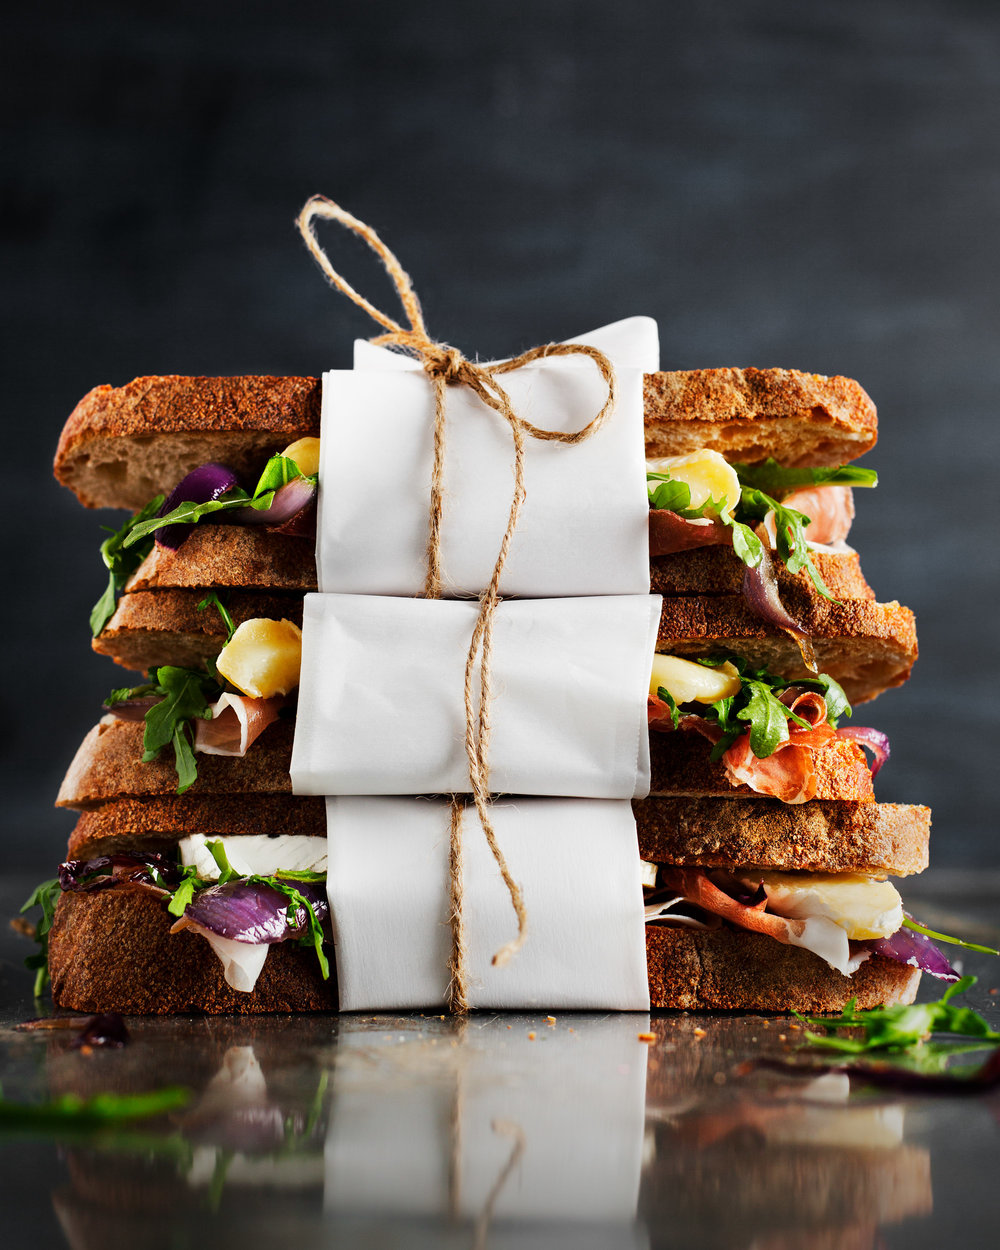 president-cheese-brie-sandwiches-stacked-lesliegrow.jpg